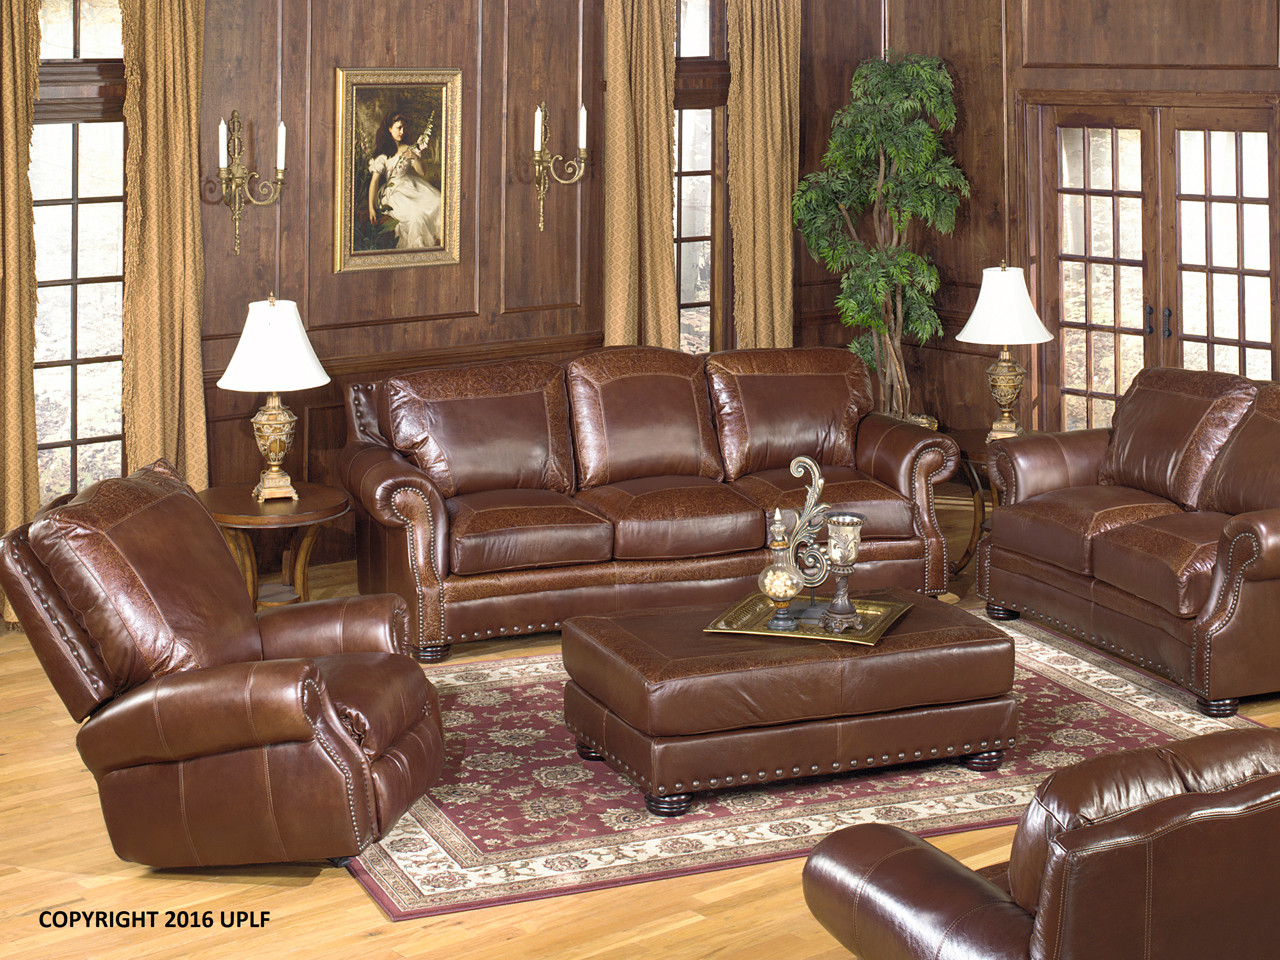 Superieur Extra Long Leather Sofa Collection. Made In Utah